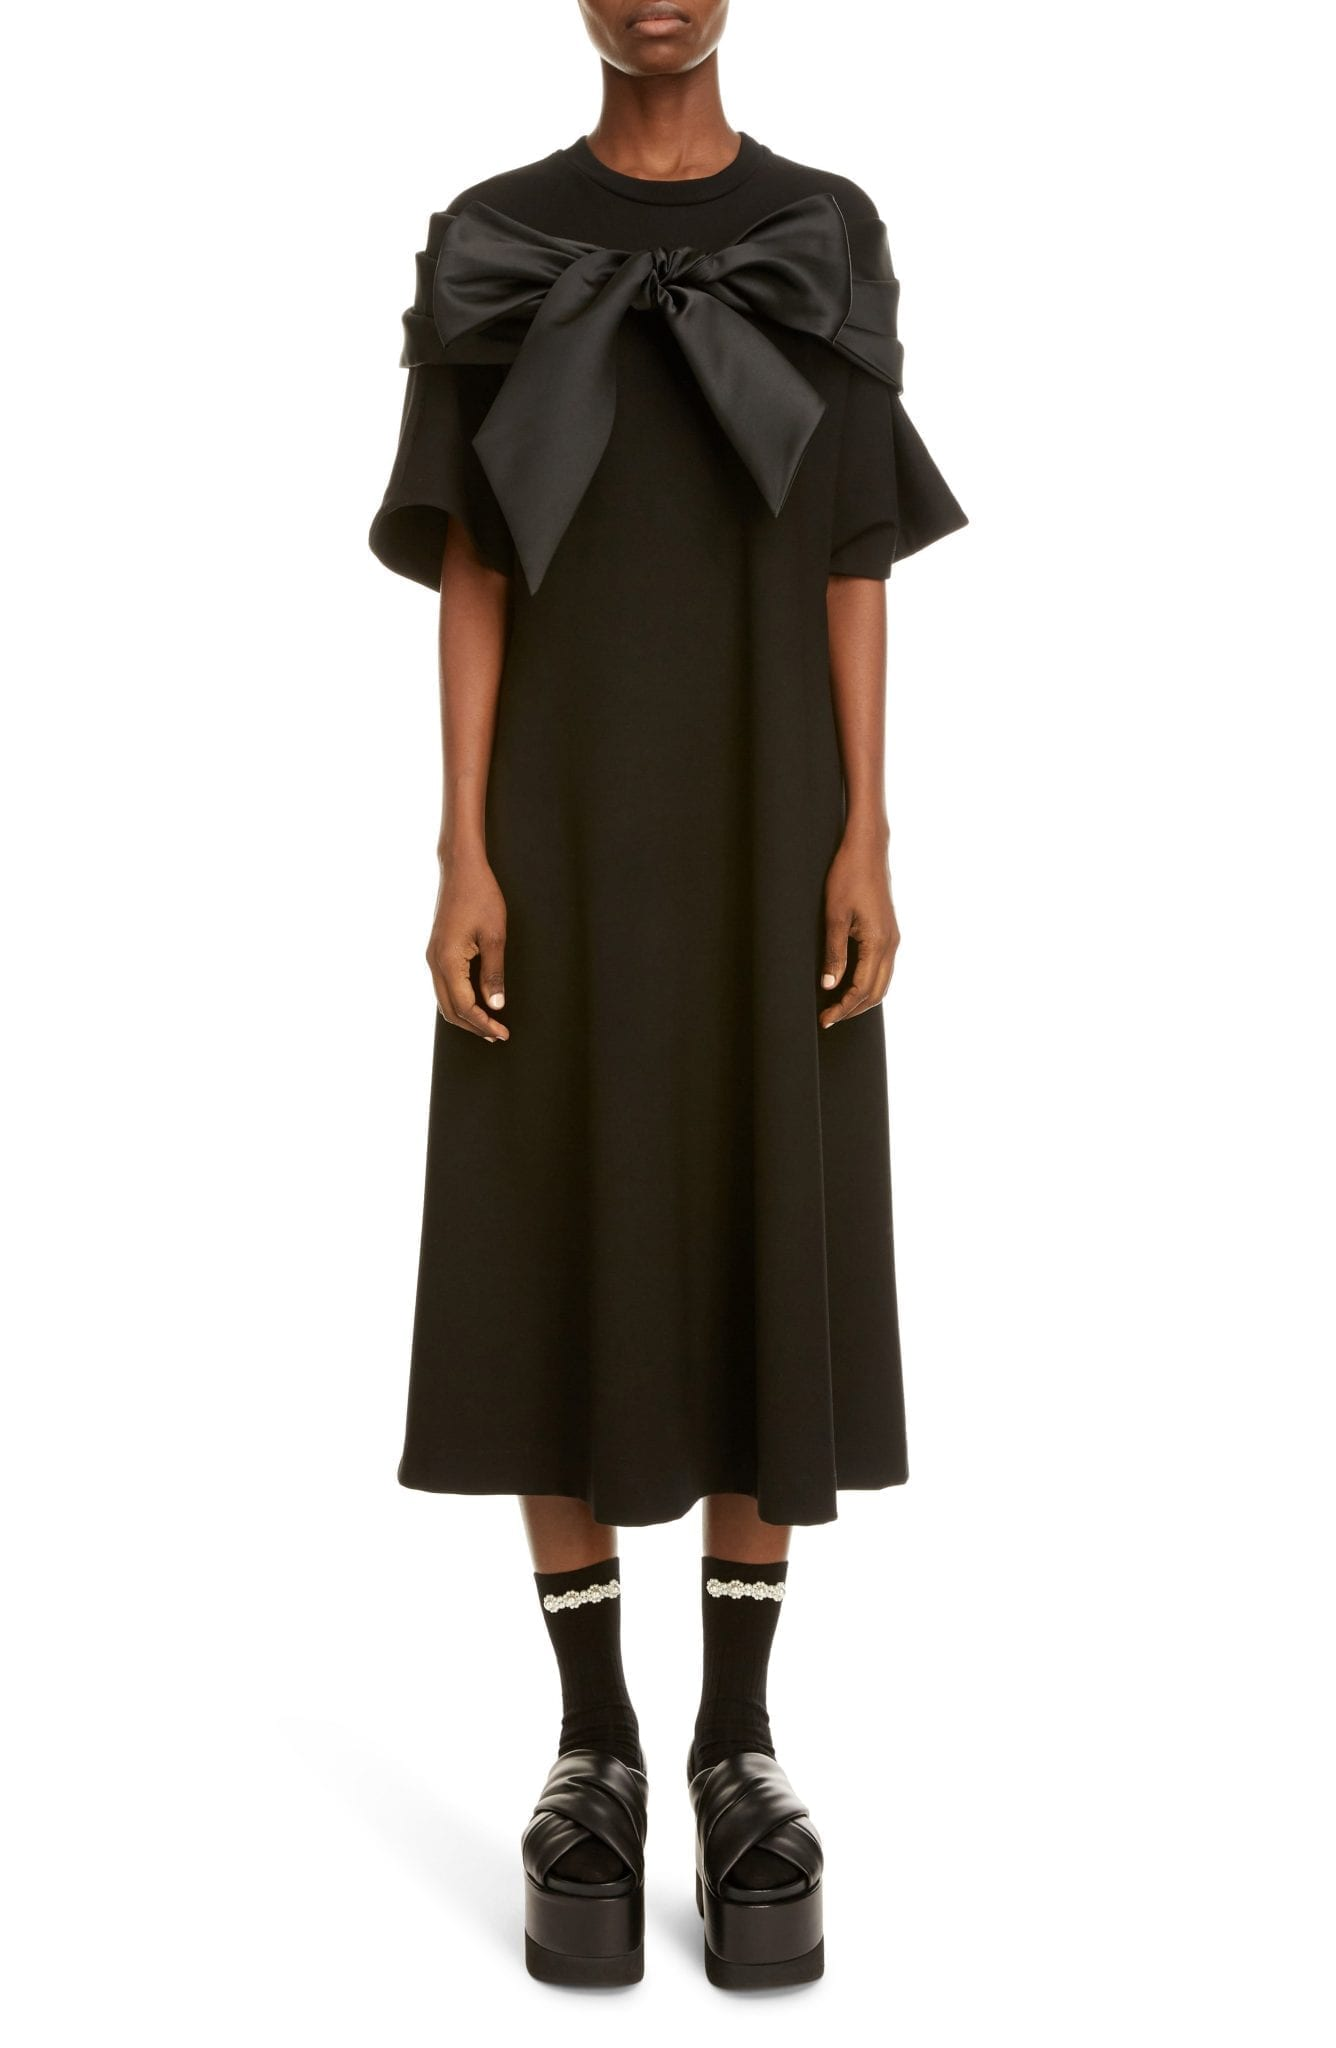 SIMONE ROCHA Bow Detail Midi T-Shirt Dress